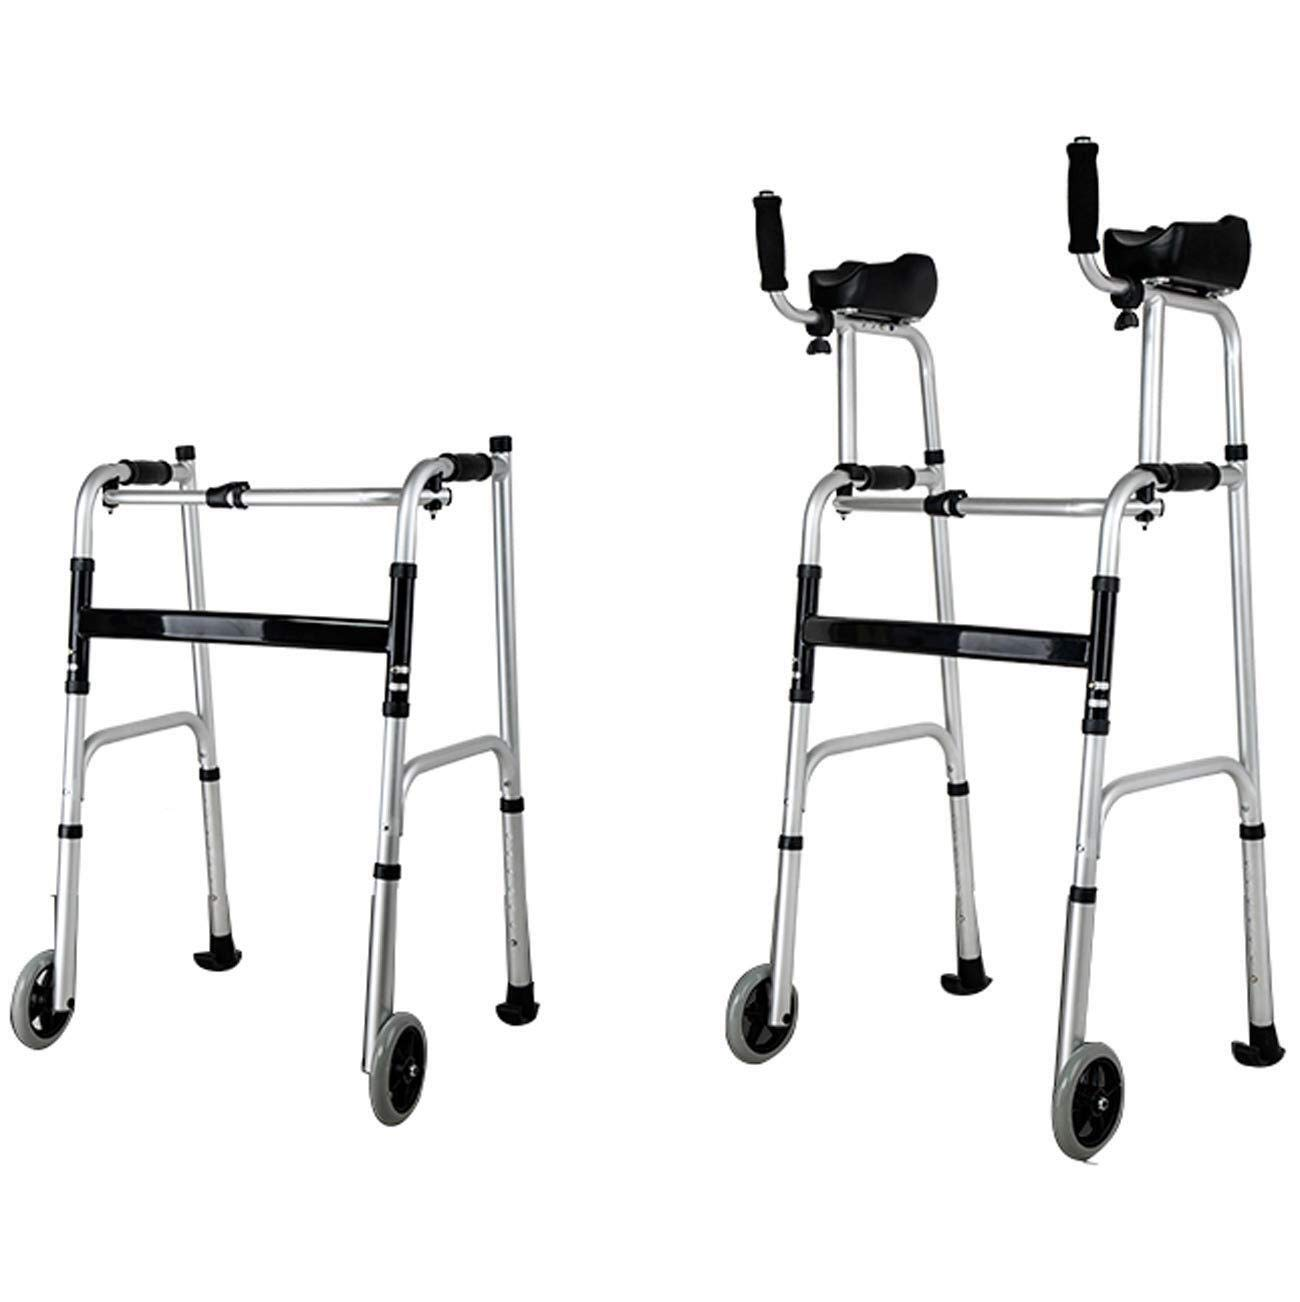 Walking Frame with Wheels Narrow, Portable Bag Lockable Brake Adjustable Height Auxiliary Walking Safety Walker (Color : with arm Drag) by YL WALKER (Image #3)